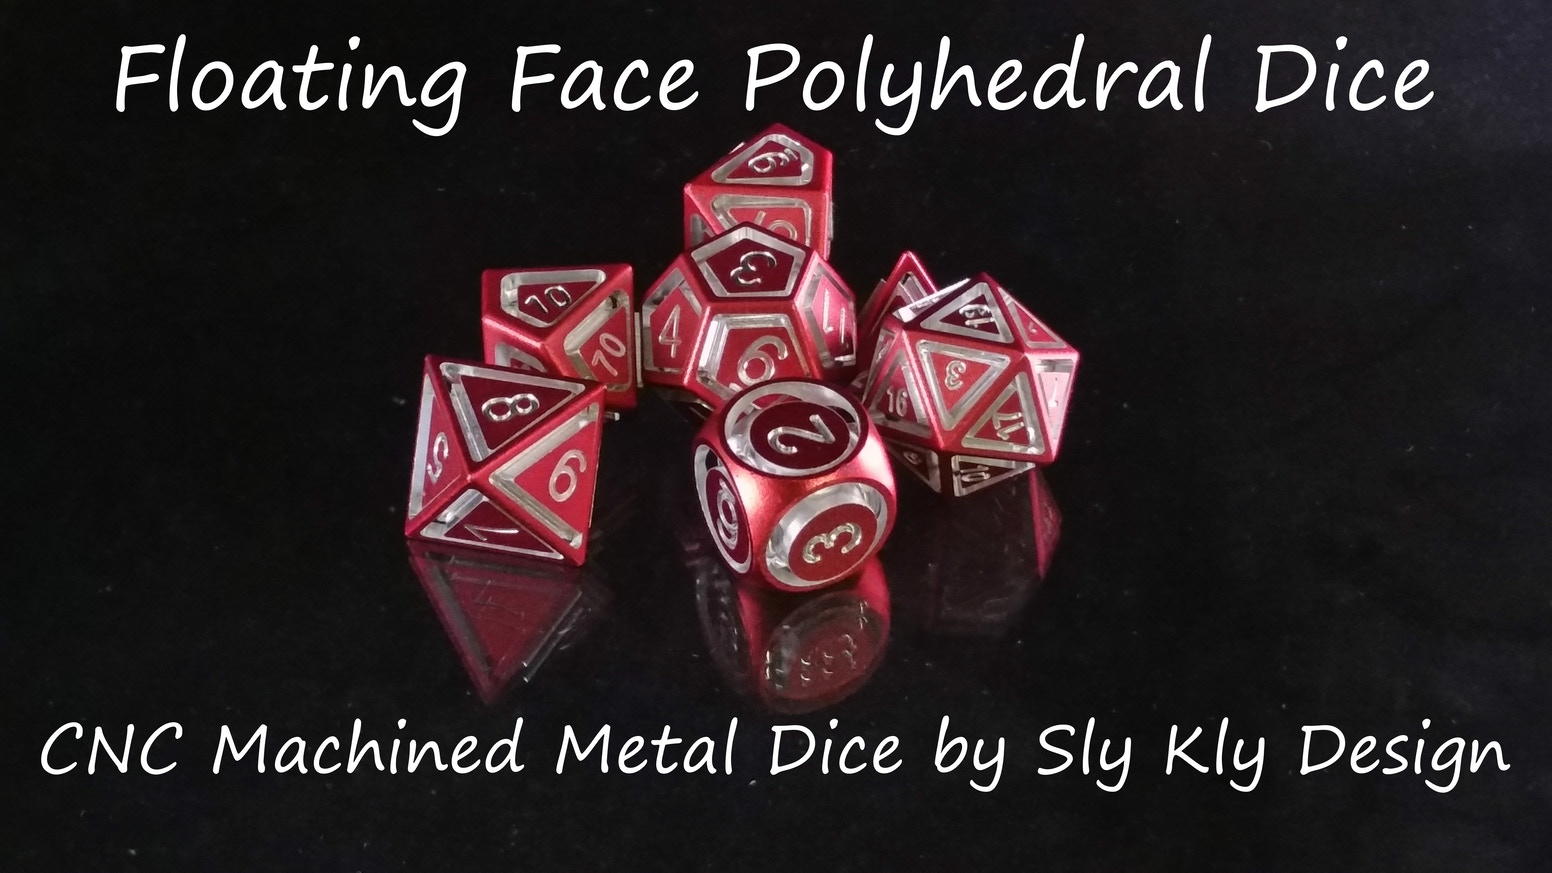 Precision Machined Metal Dice for Perfect Balance. Floating Face Style - Each Die is precision machined into 2 pieces!